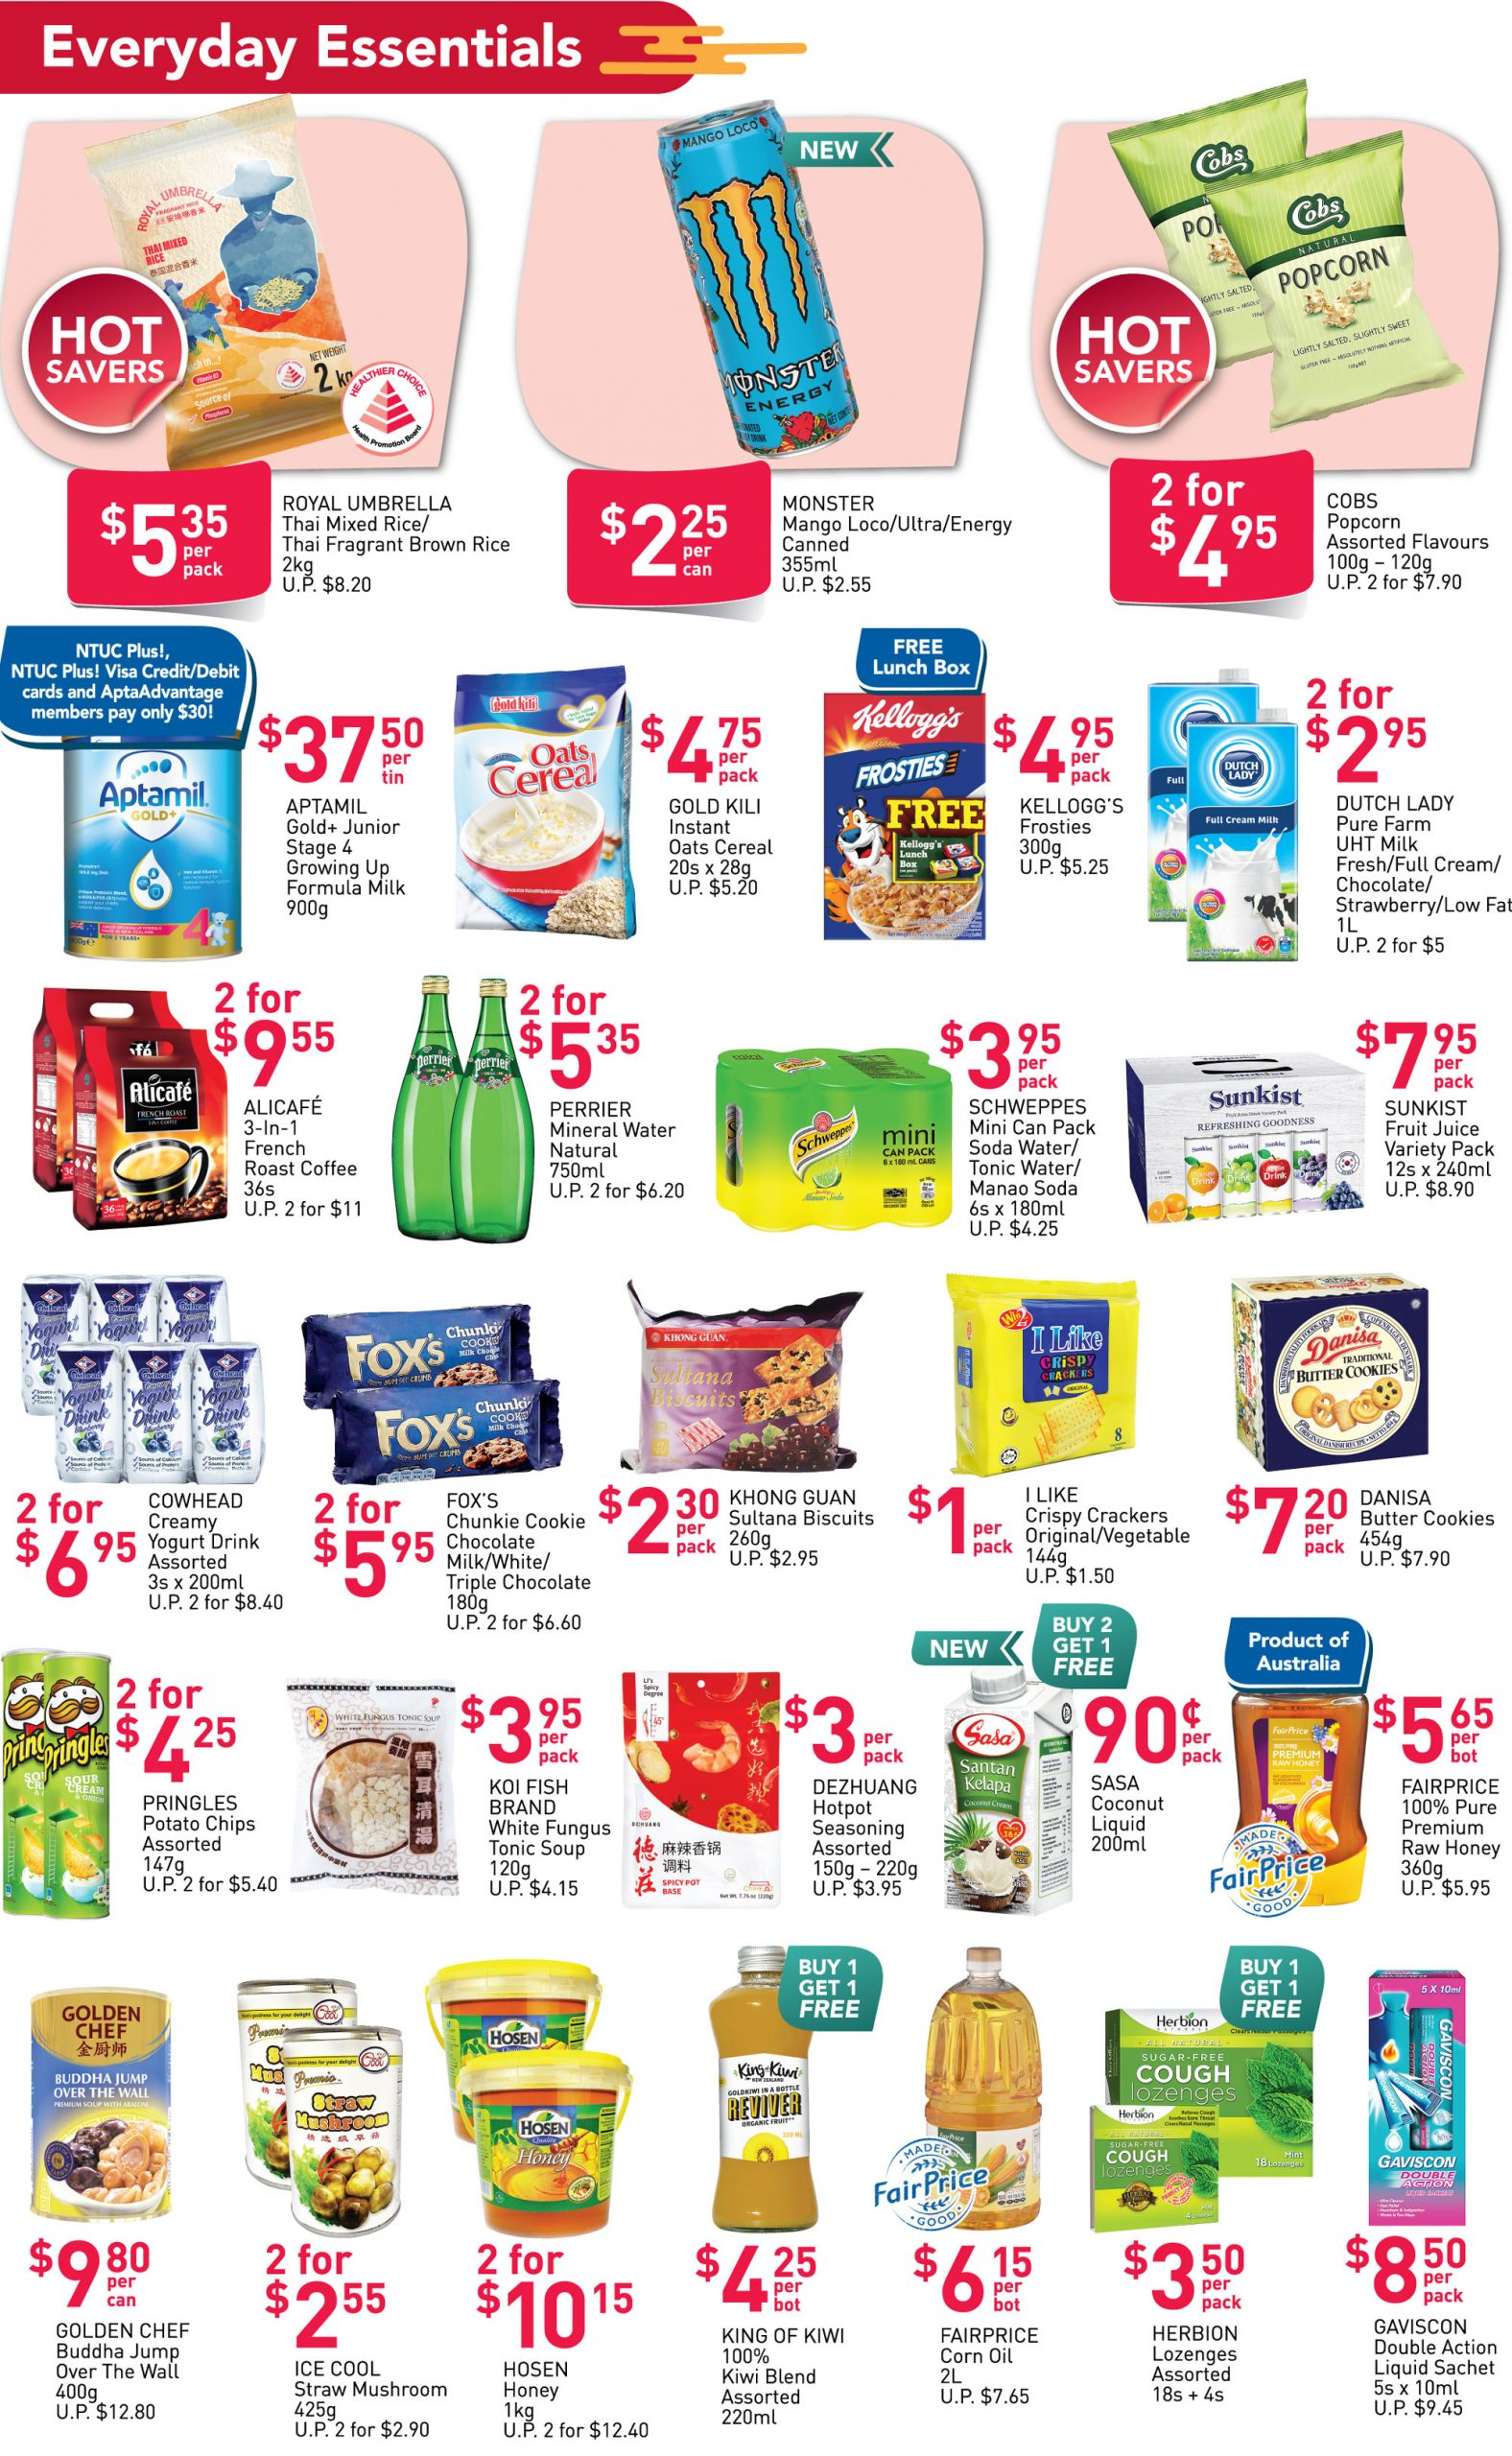 FairPrice's weekly saver deals till 24 February 2021 (1)